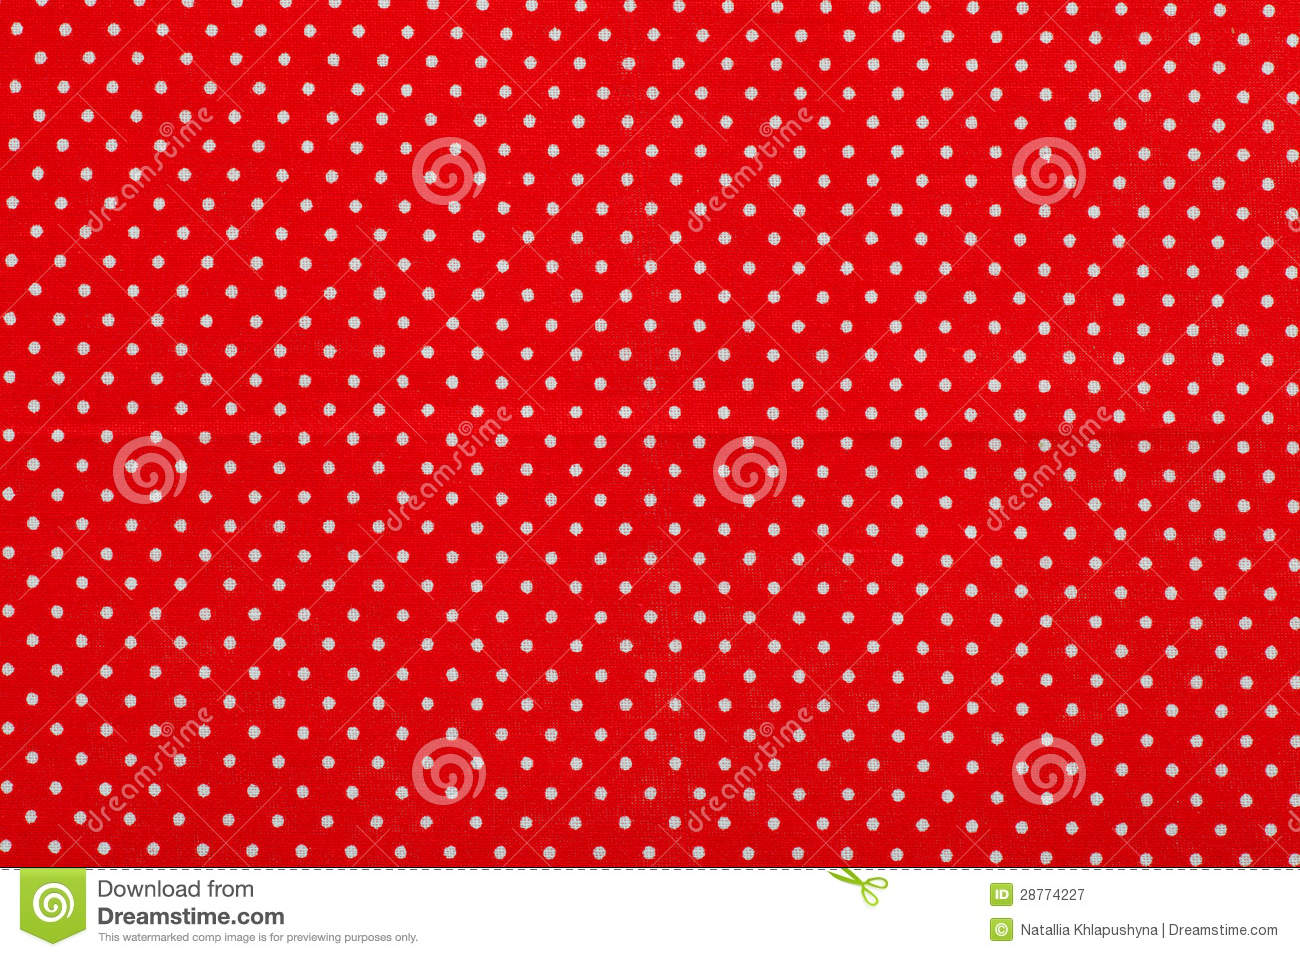 Seamless chevron pattern on linen texture stock photos image - Red Polka Dot Fabric Royalty Free Stock Photography